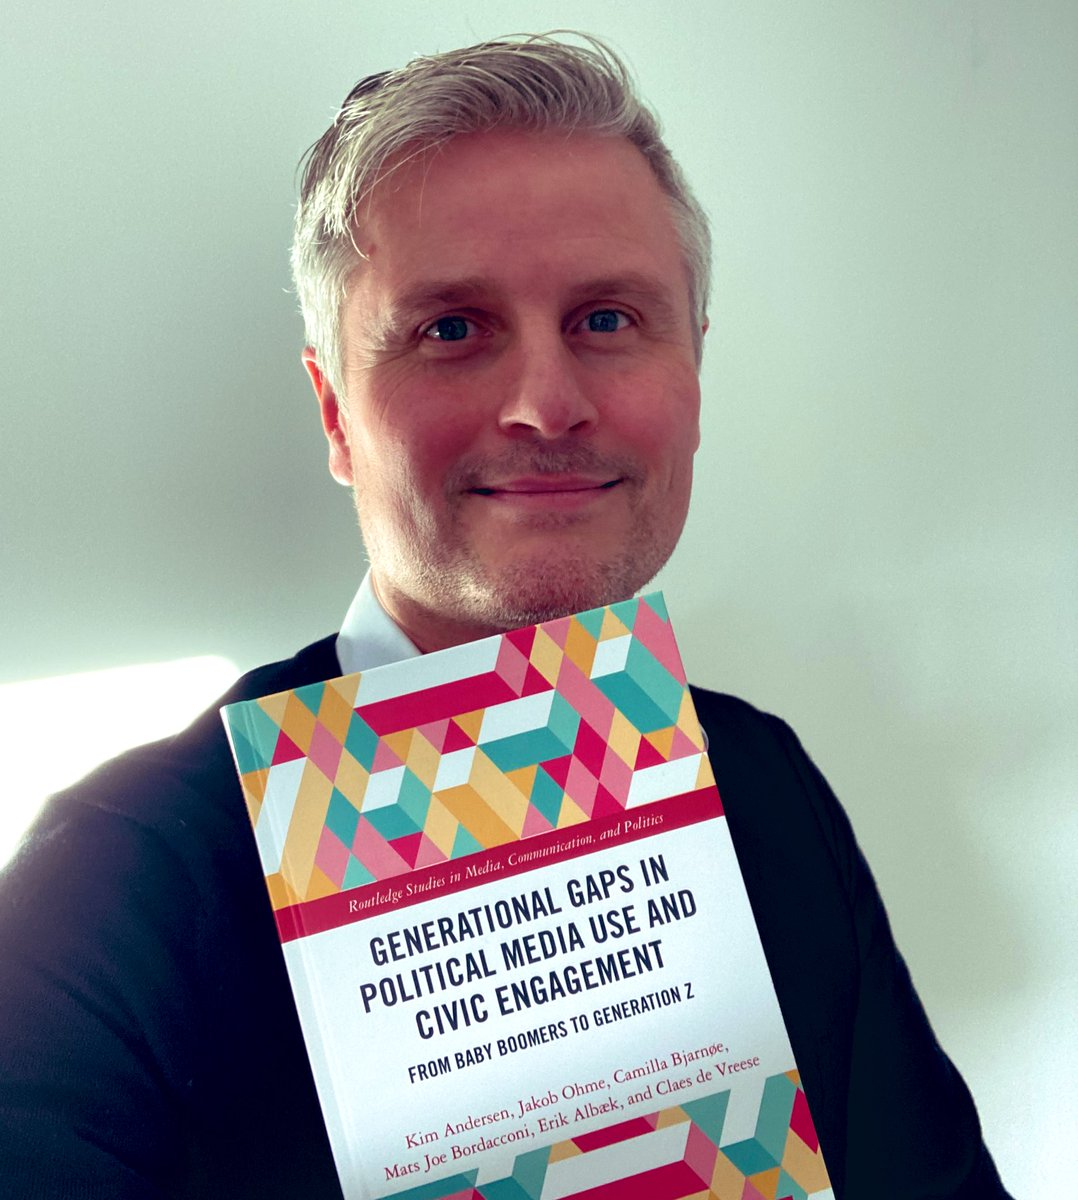 In the mail #HardbackExcitement 👏 Stoked to get the actual copy of Generational Gaps in Political Media Use and Civic Engagement. Great book project, h/t @kimandersen88, @dscheykopp and Camilla, Erik, Joe & @cfjsdu The ebook is free #openaccess: 🎀bit.ly/39TVddB